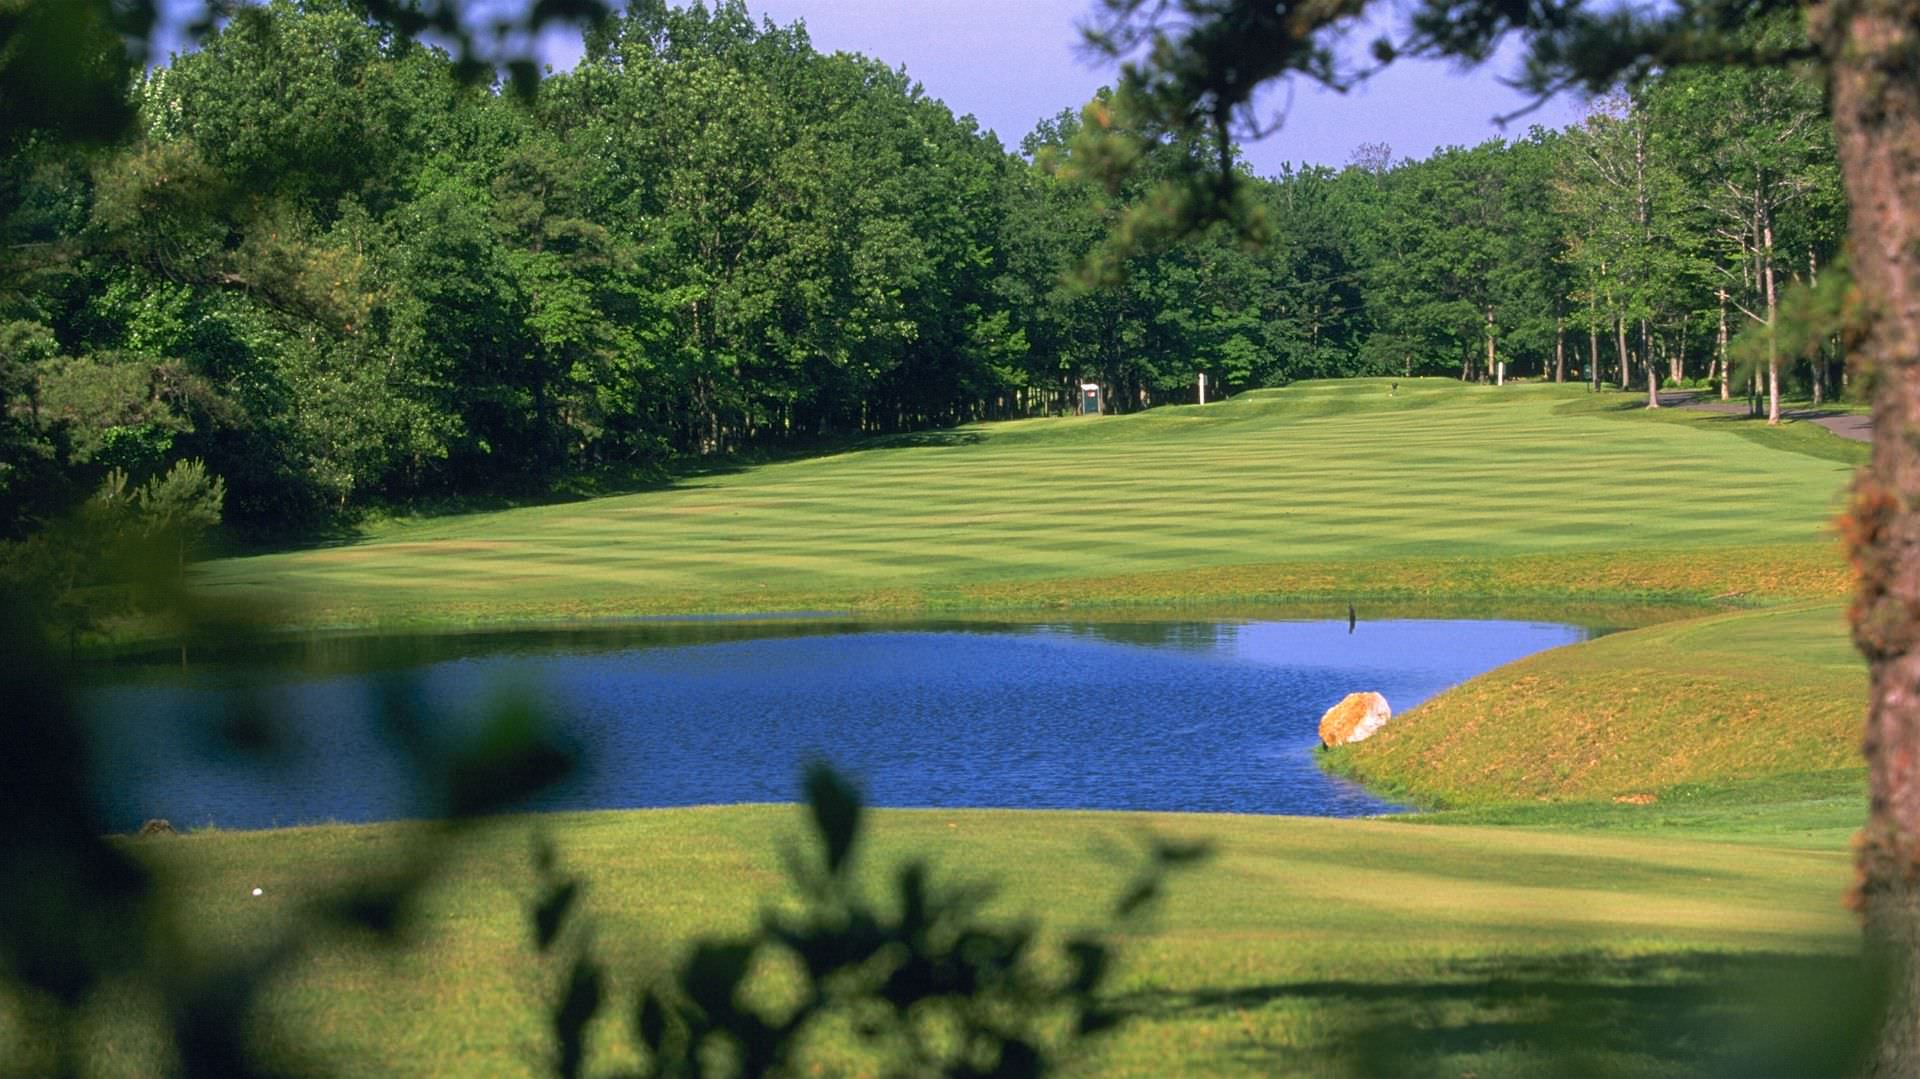 case 27 2 rock creek golf Foxchase golf club is your local destination with country club feel golf all contained on a public course our facilities provide a lovely backdrop weddings, your next golf outing or business banquet.